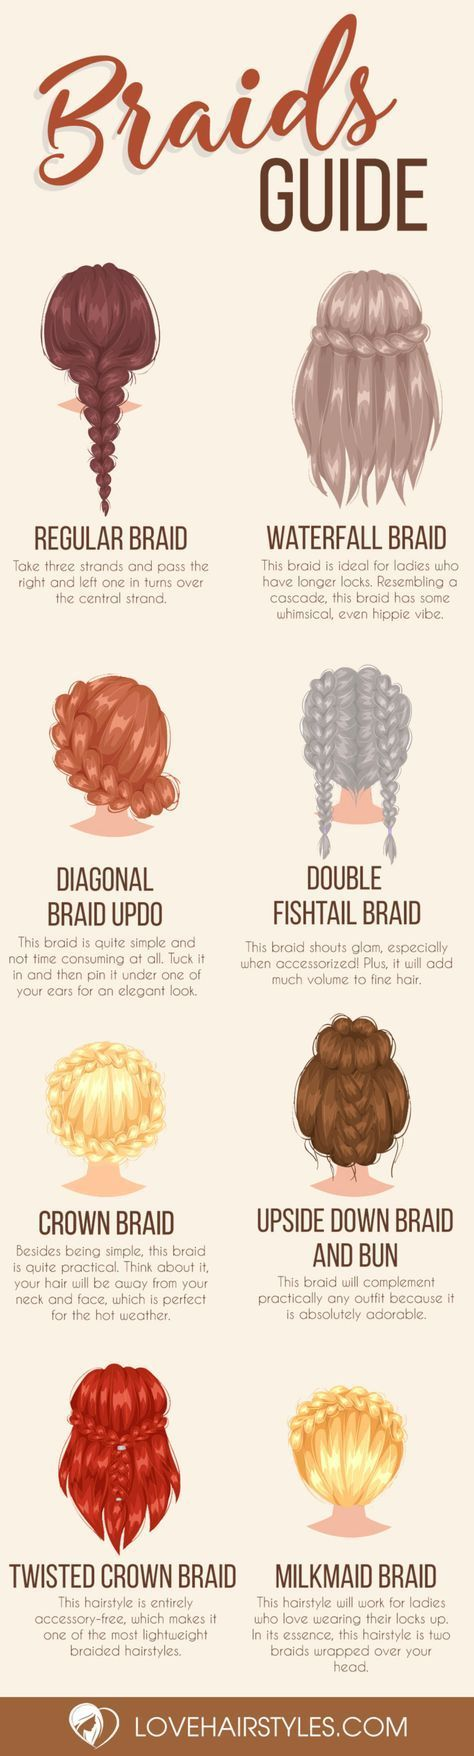 70 Charming Braided Hairstyles | LoveHairStyles.com